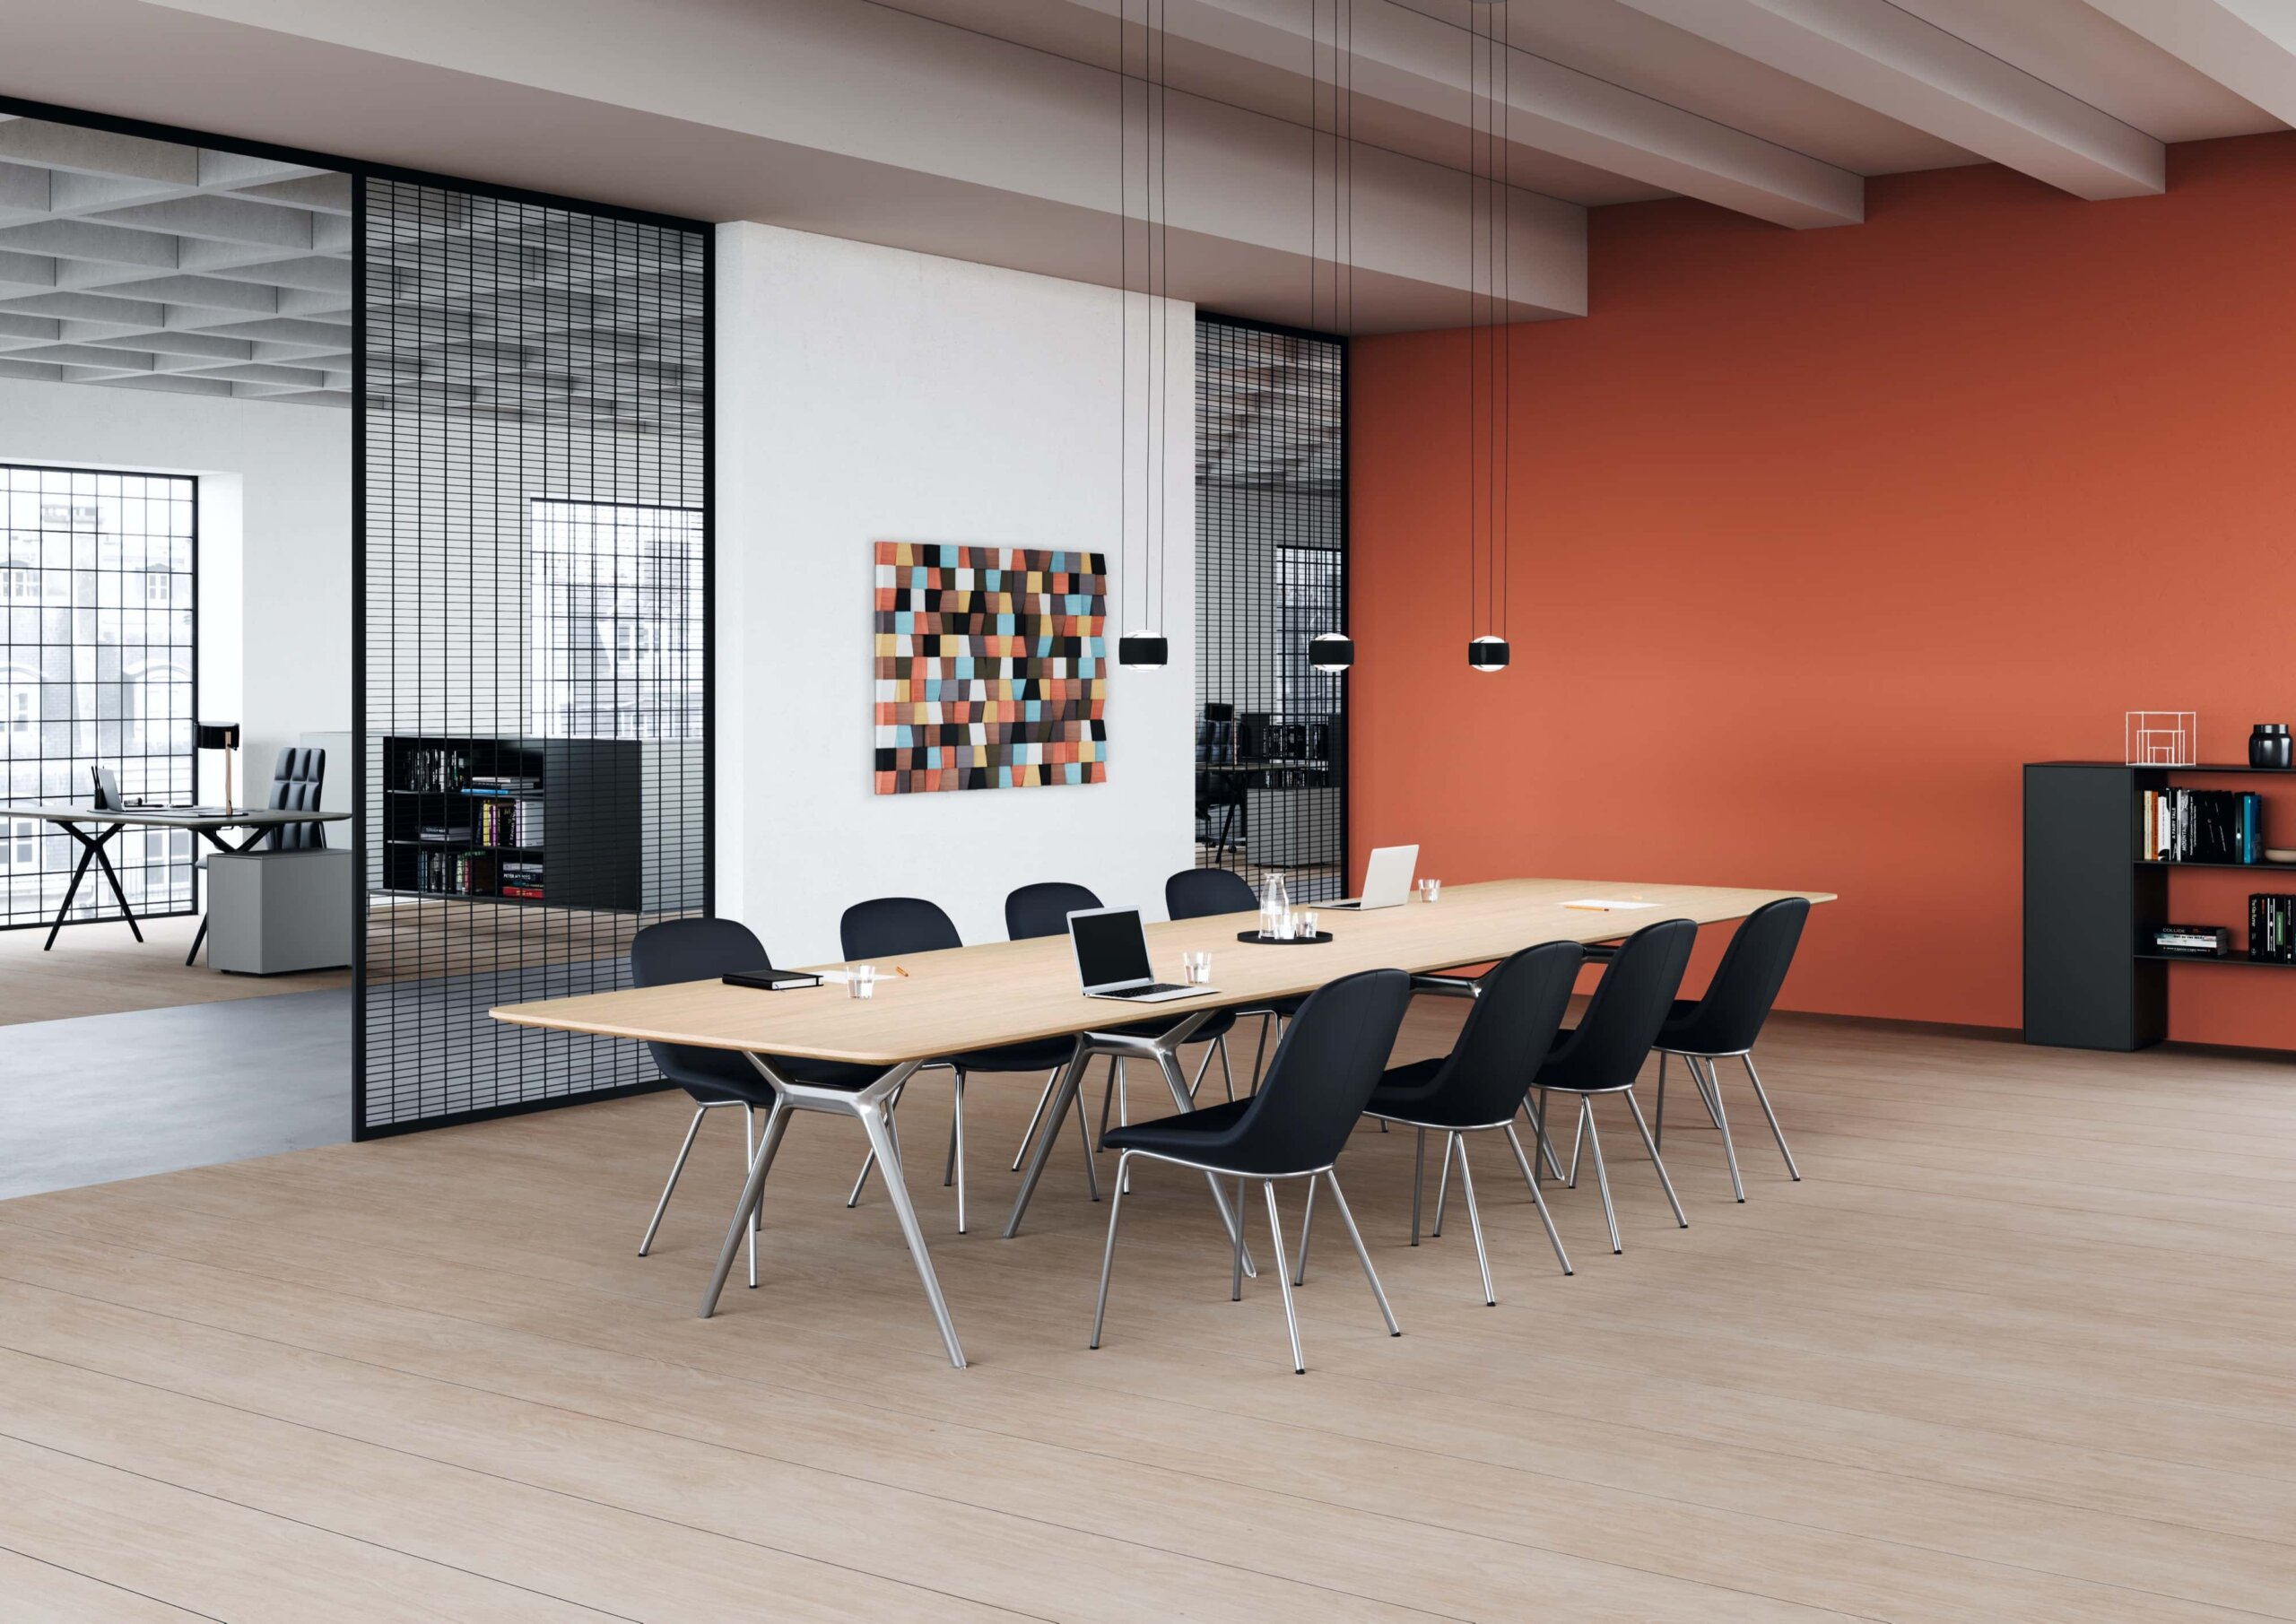 Sheru chAIRs in leather with polished steel legs, with Conference-X table